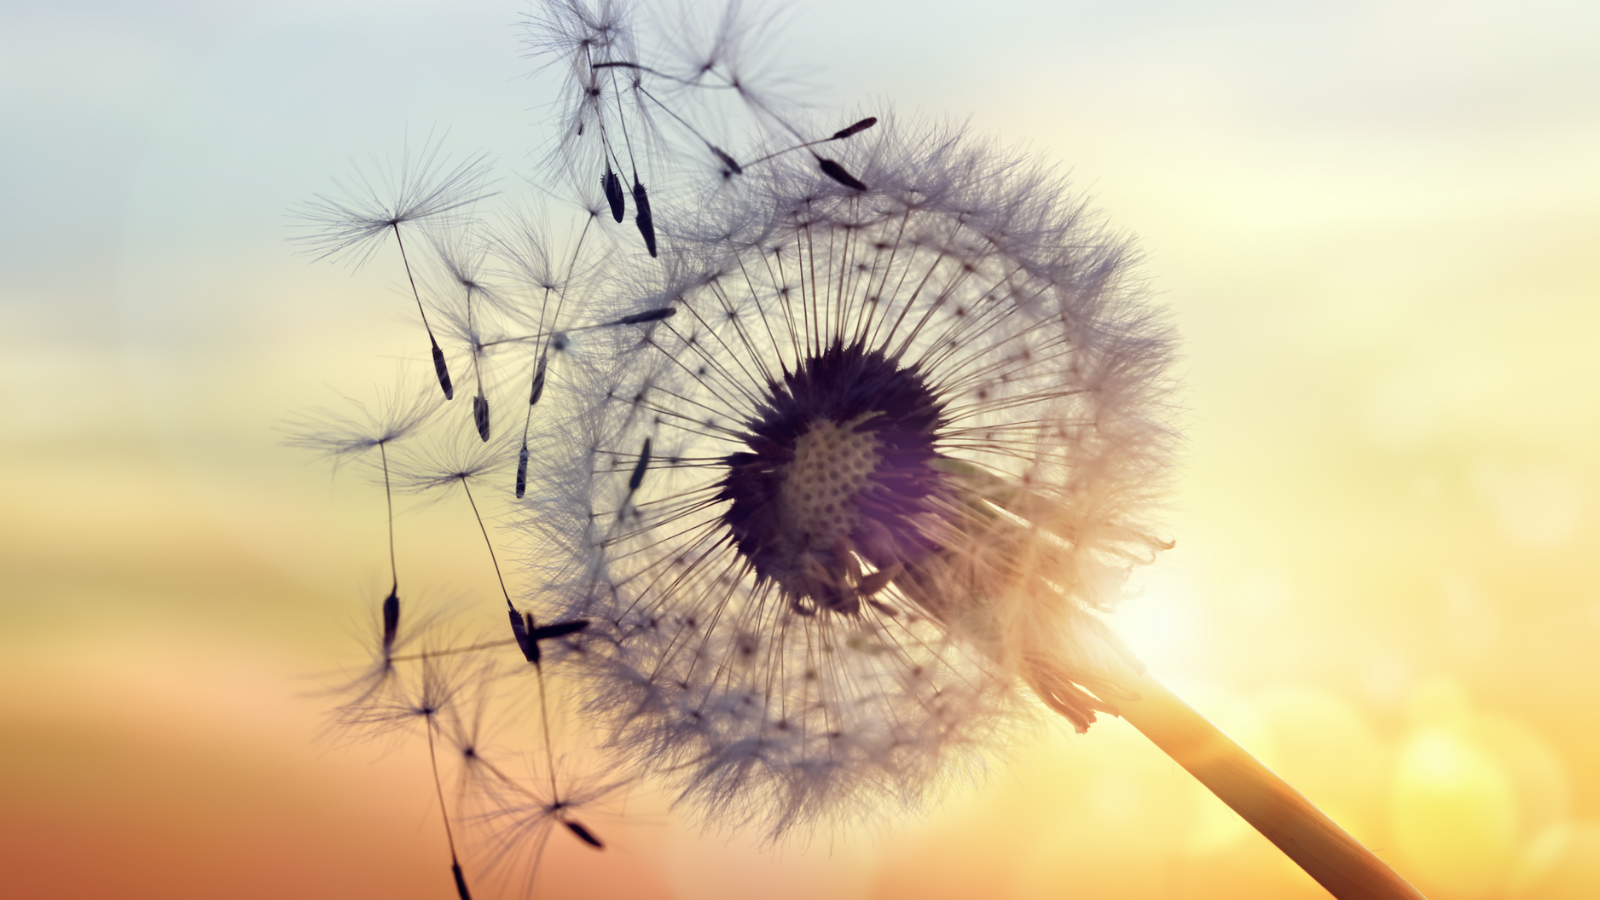 Lowering your levels of this may actually help your allergies